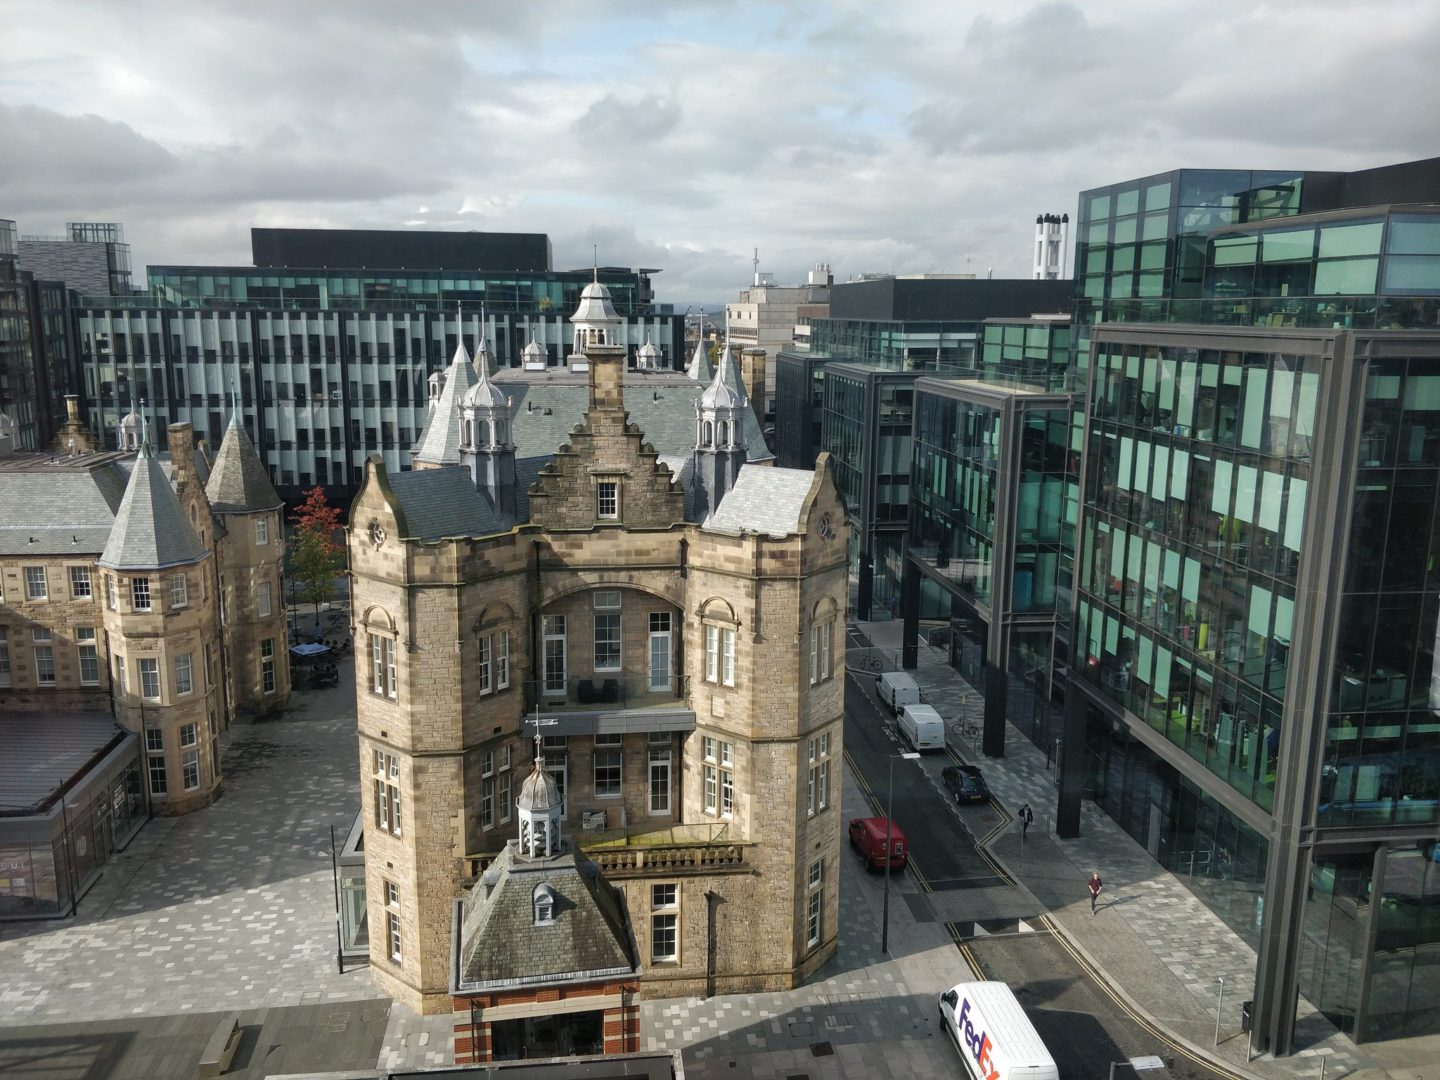 Quartermile in Edinburgh, home to many high value city jobs